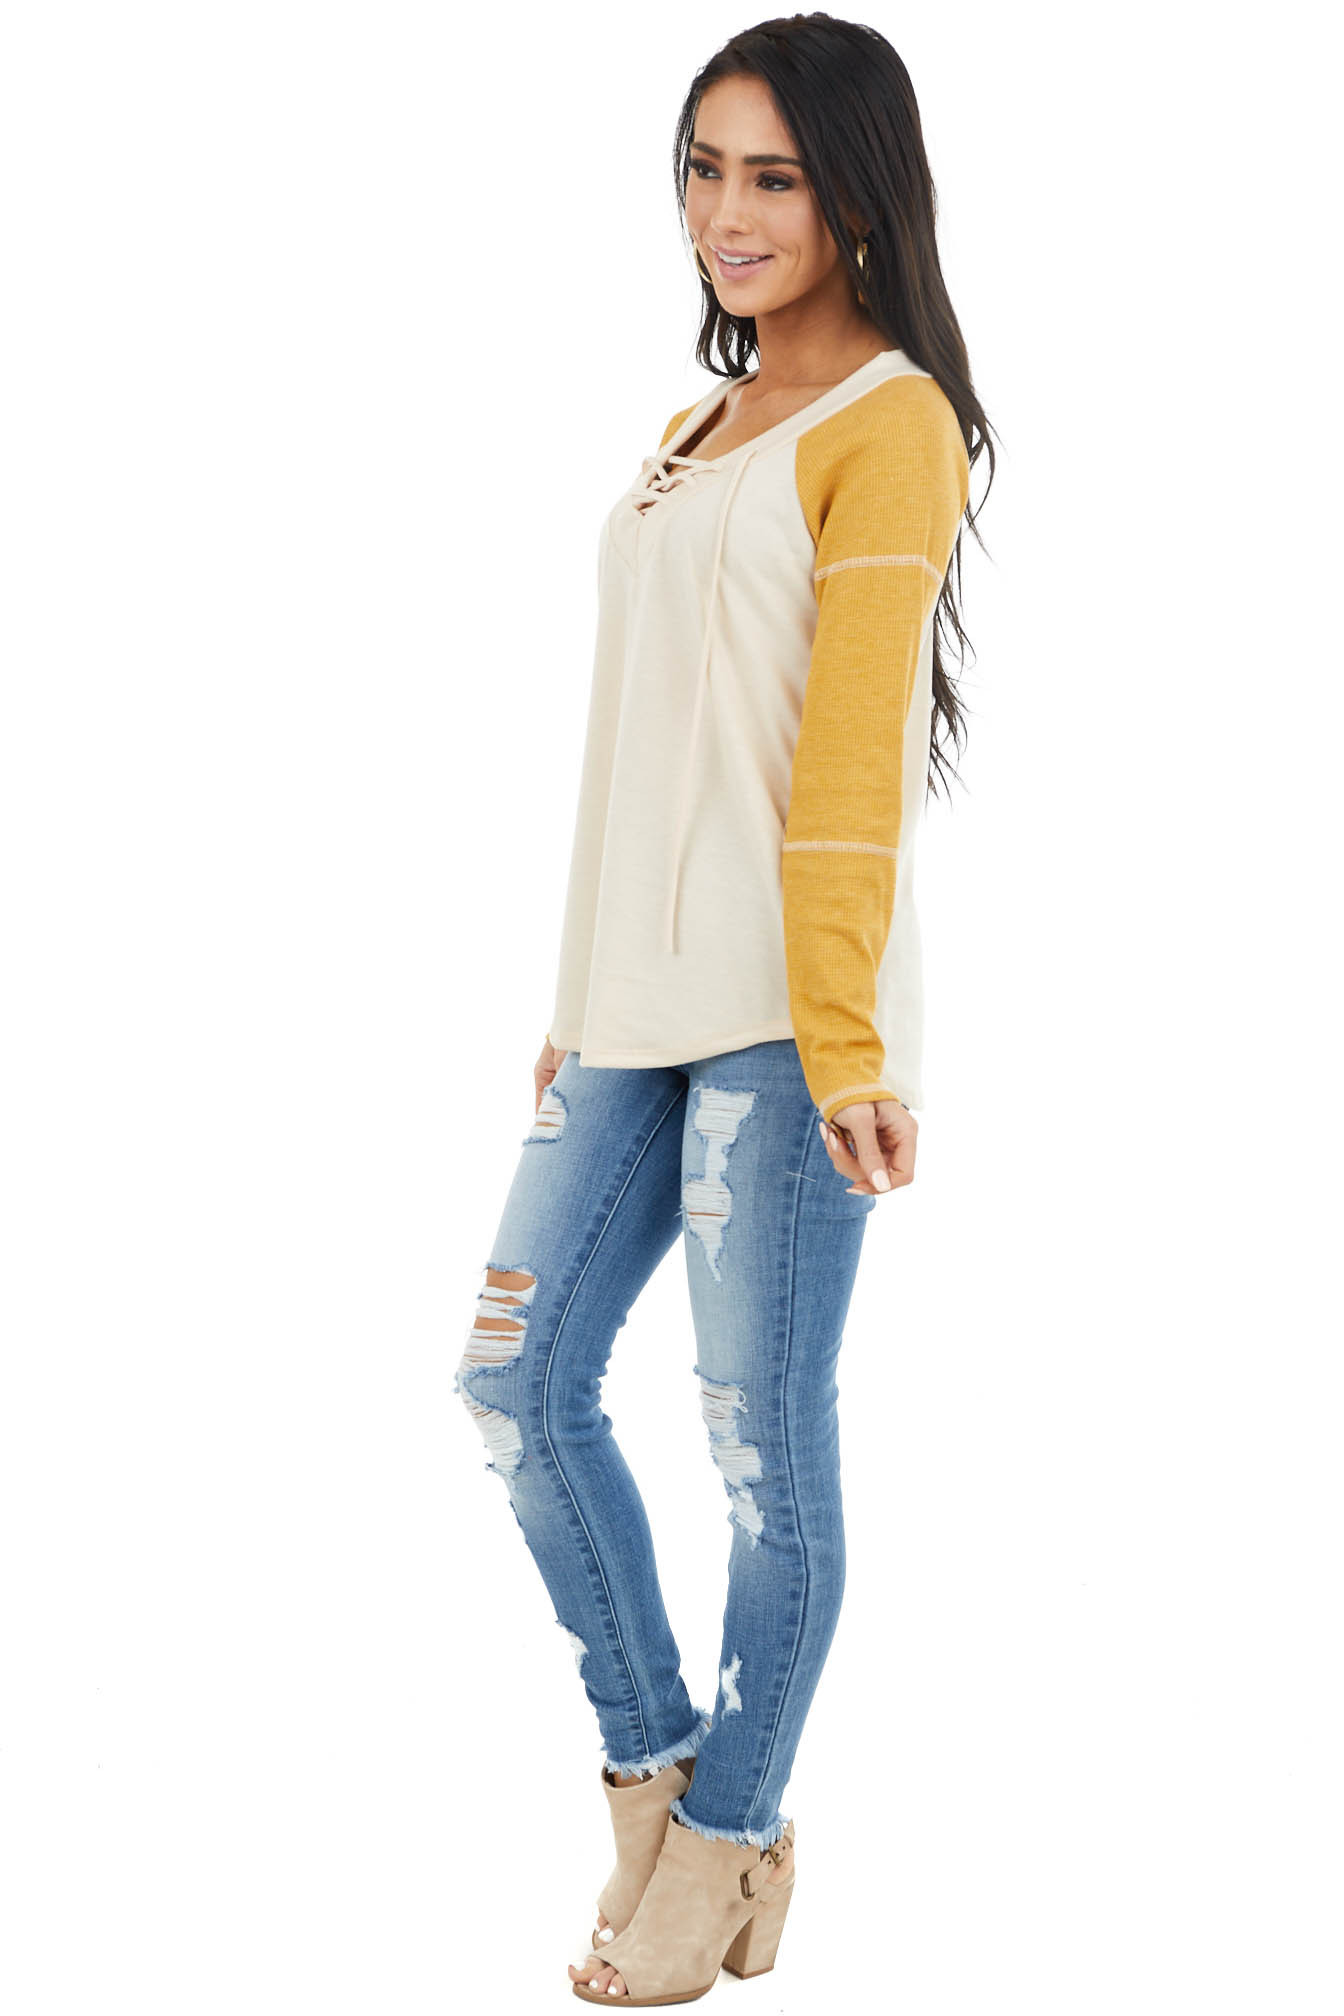 Light Latte Long Sleeve Top with Mustard Contrast Sleeves